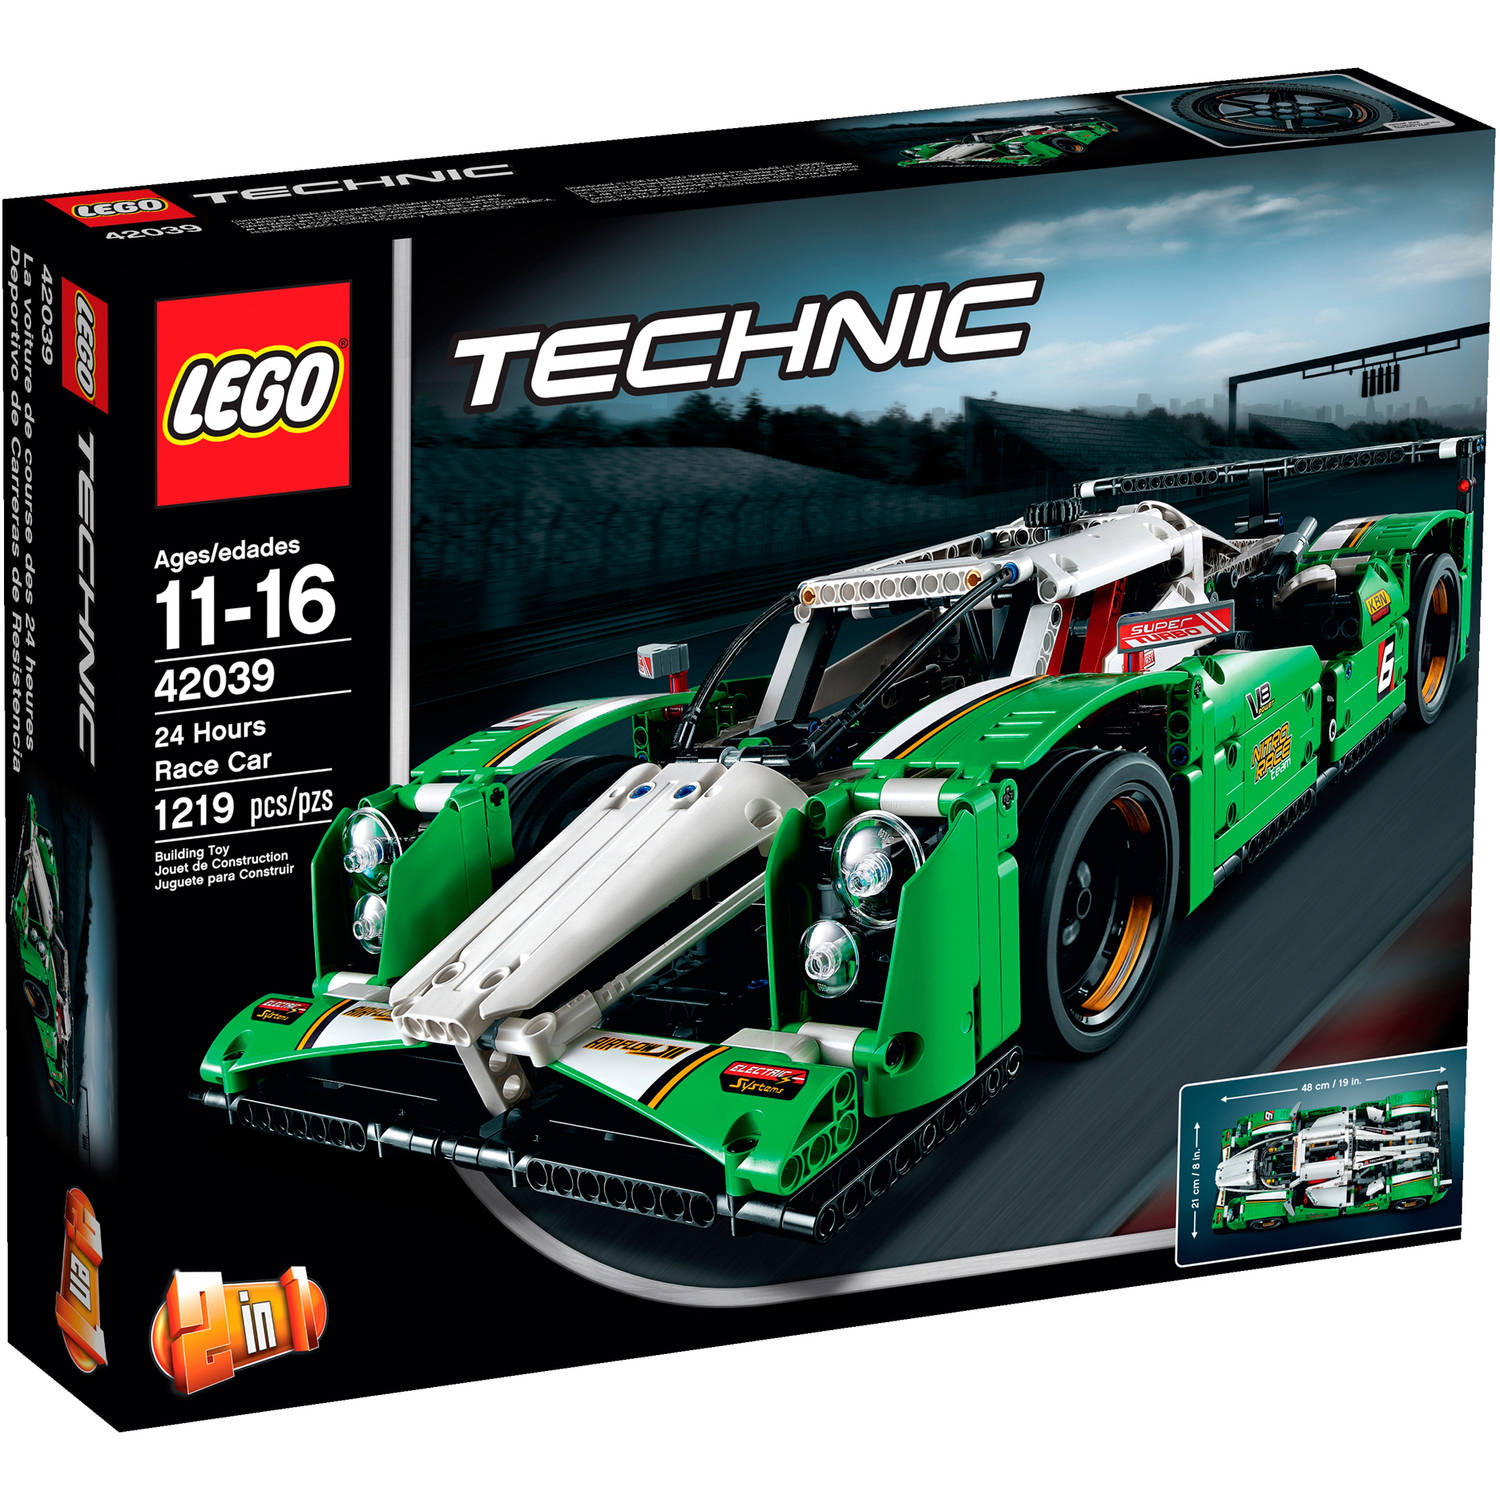 LEGO Technic 24 Hours Race Car, 42039